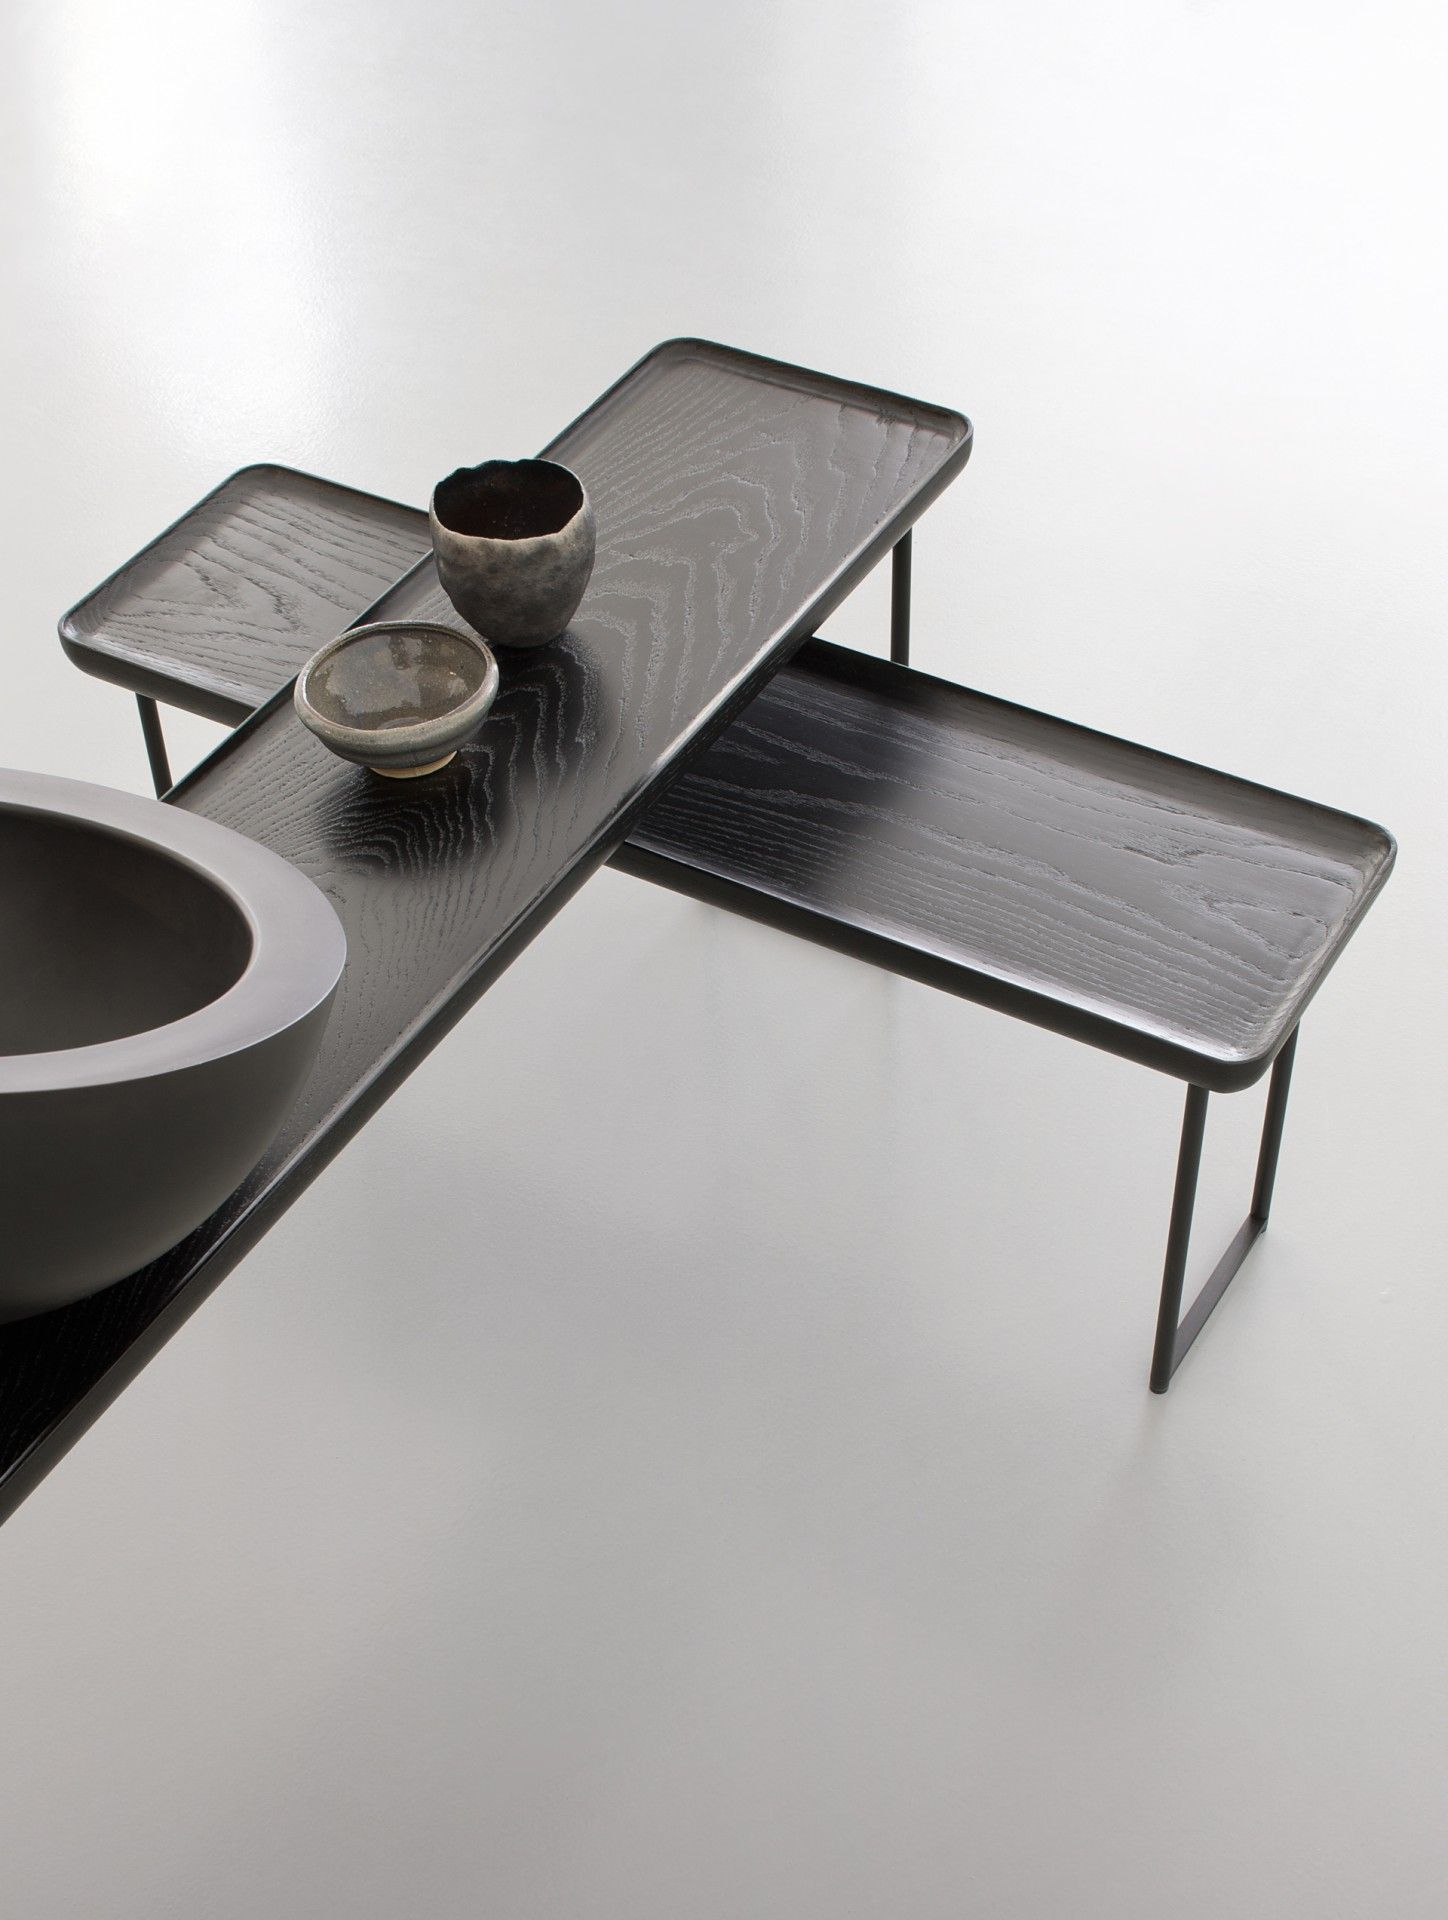 Nichetto Studio Torei Family Furniture Side Tables Japanese Coffee Table Table Furniture [ 1920 x 1448 Pixel ]